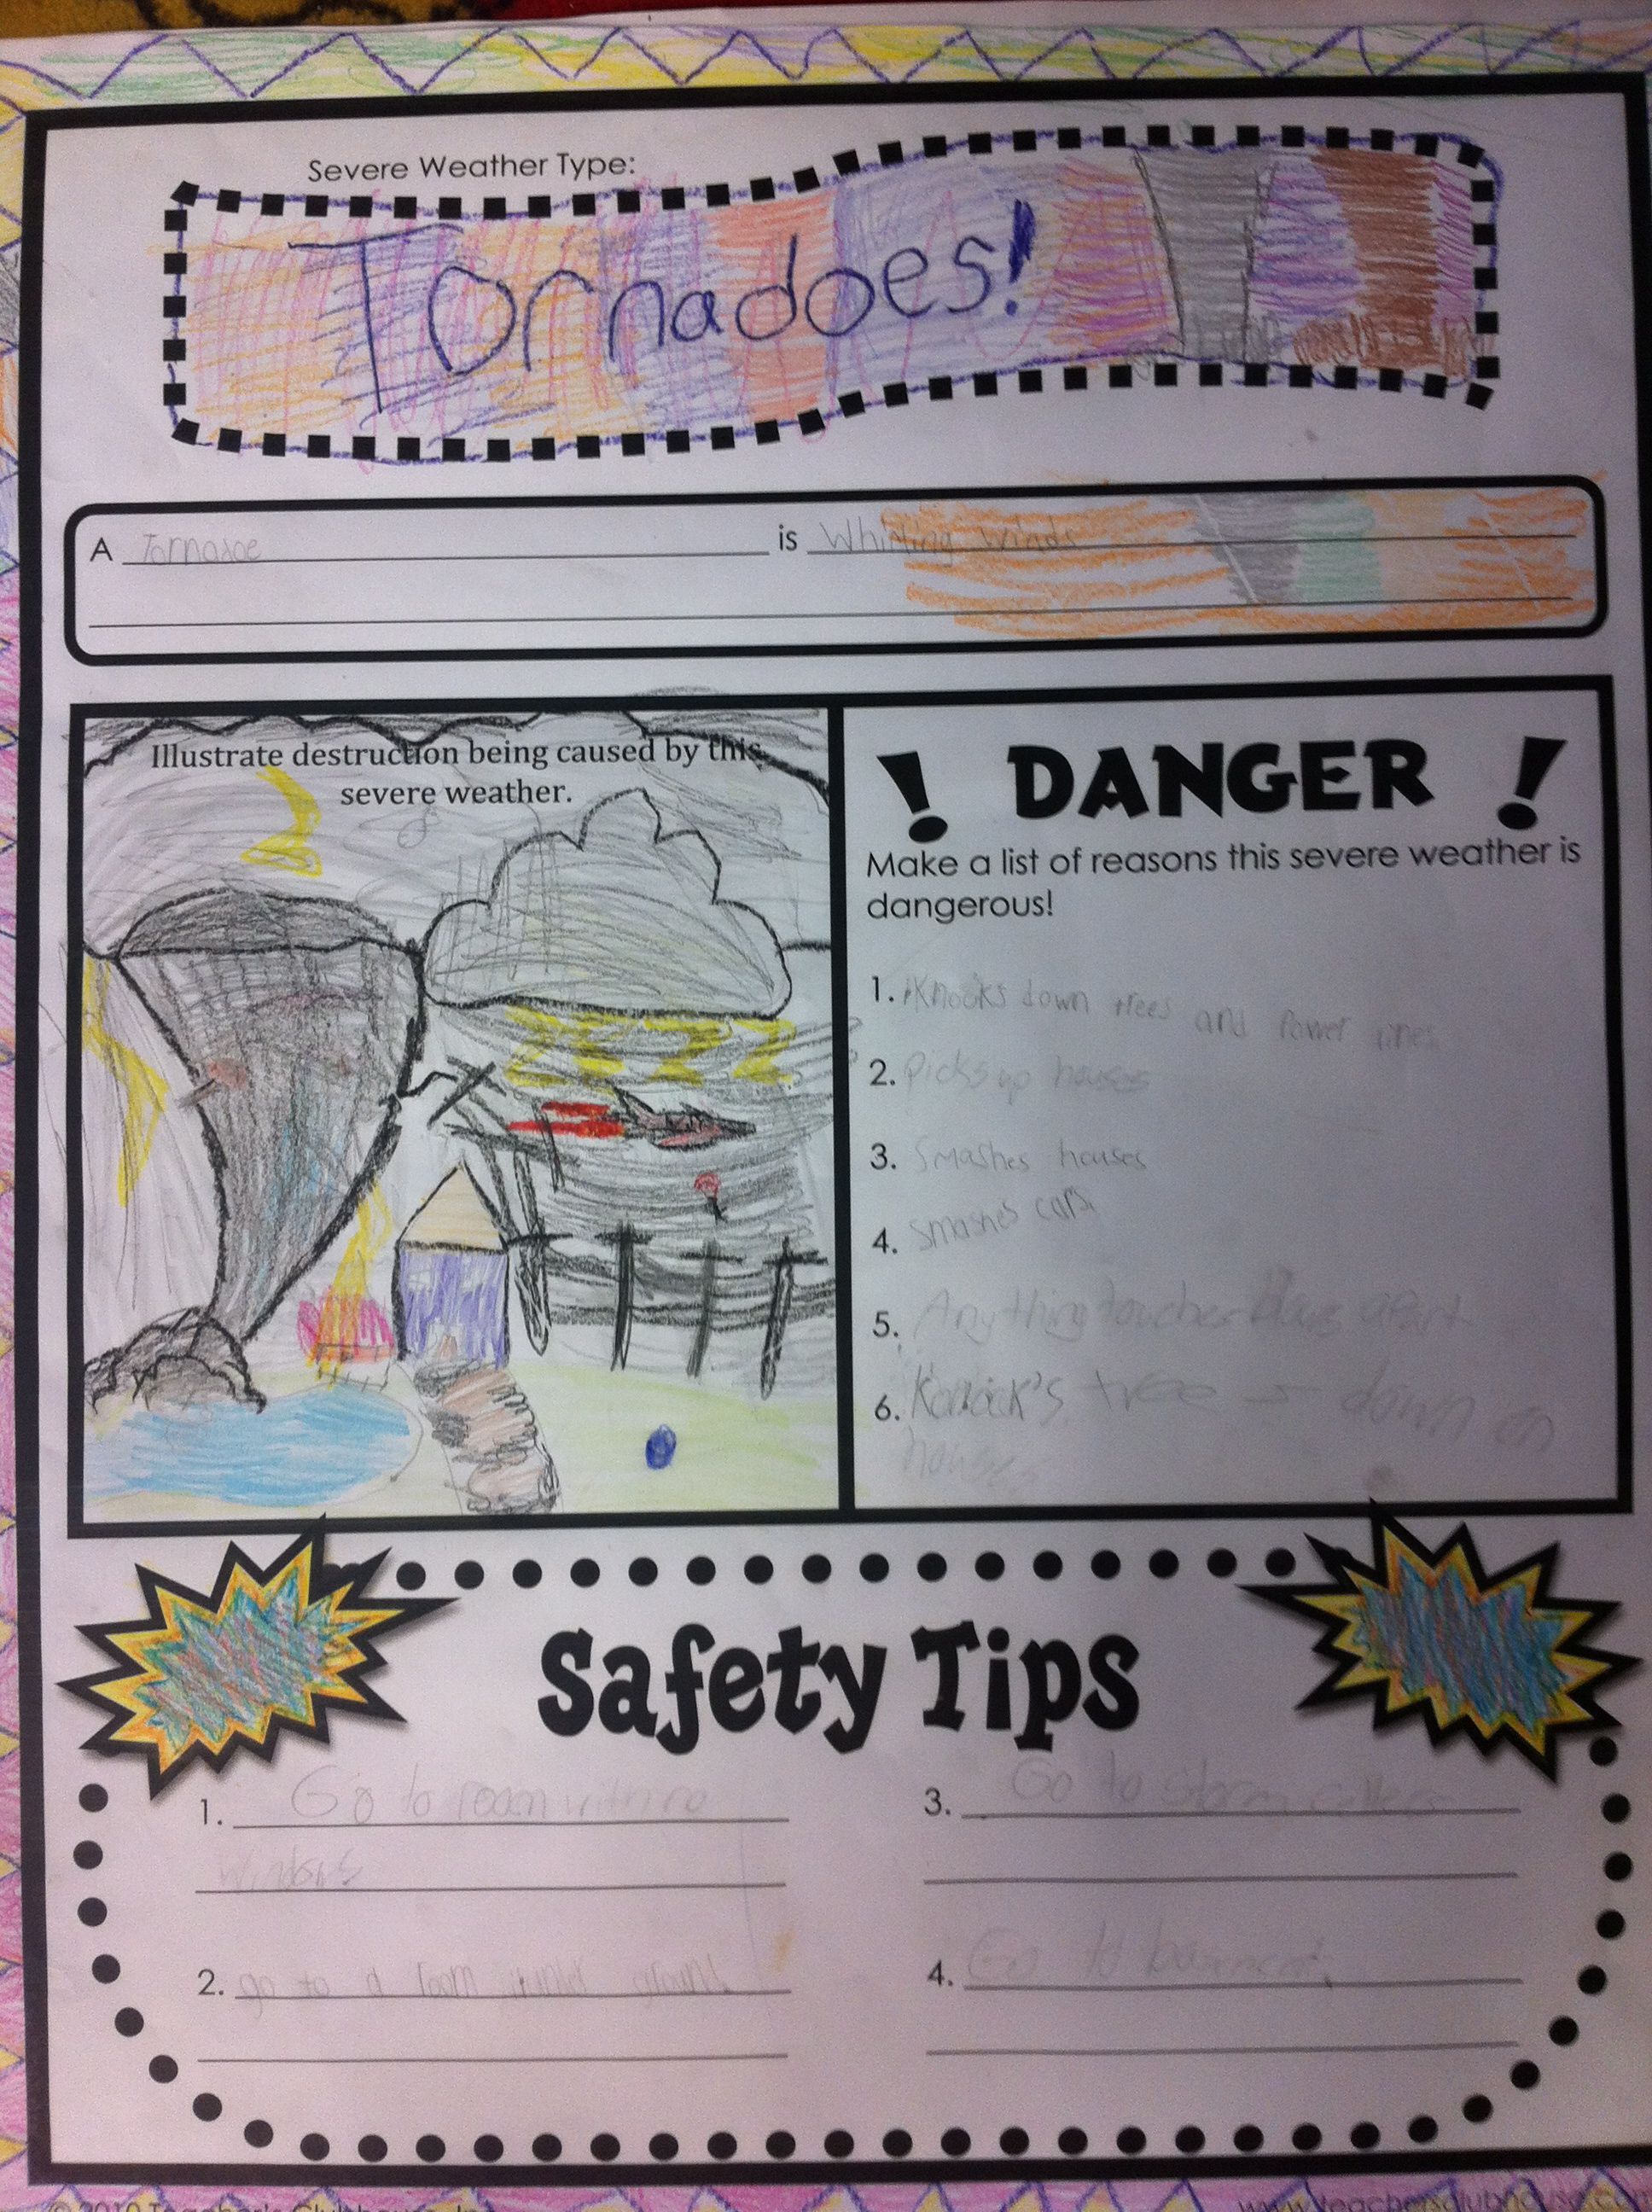 Use A Poster Printer To Turn Pages Into Posters For Group Work Http Www Teachersclubhouse Com Sci Teaching Weather Severe Weather Activities Weather Lessons [ 2592 x 1936 Pixel ]